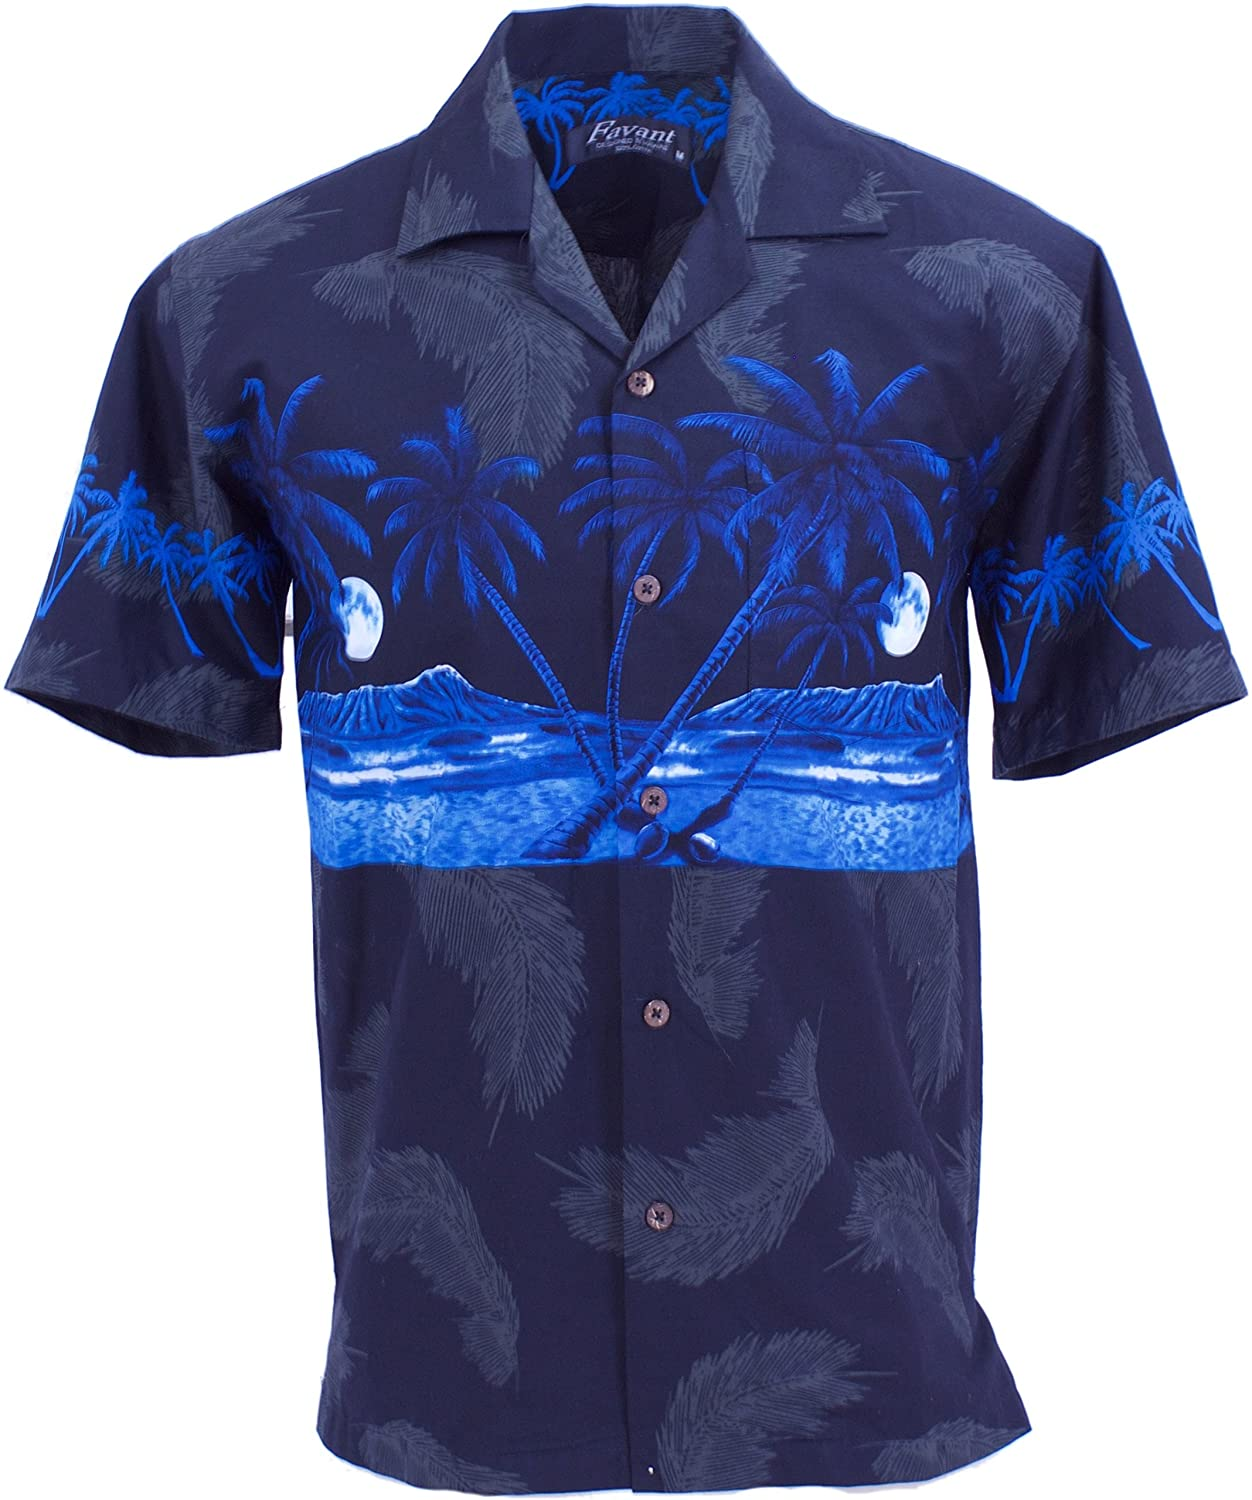 Tropical Luau Beach Palm Tree Print Men/'s Hawaiian Aloha Shirt